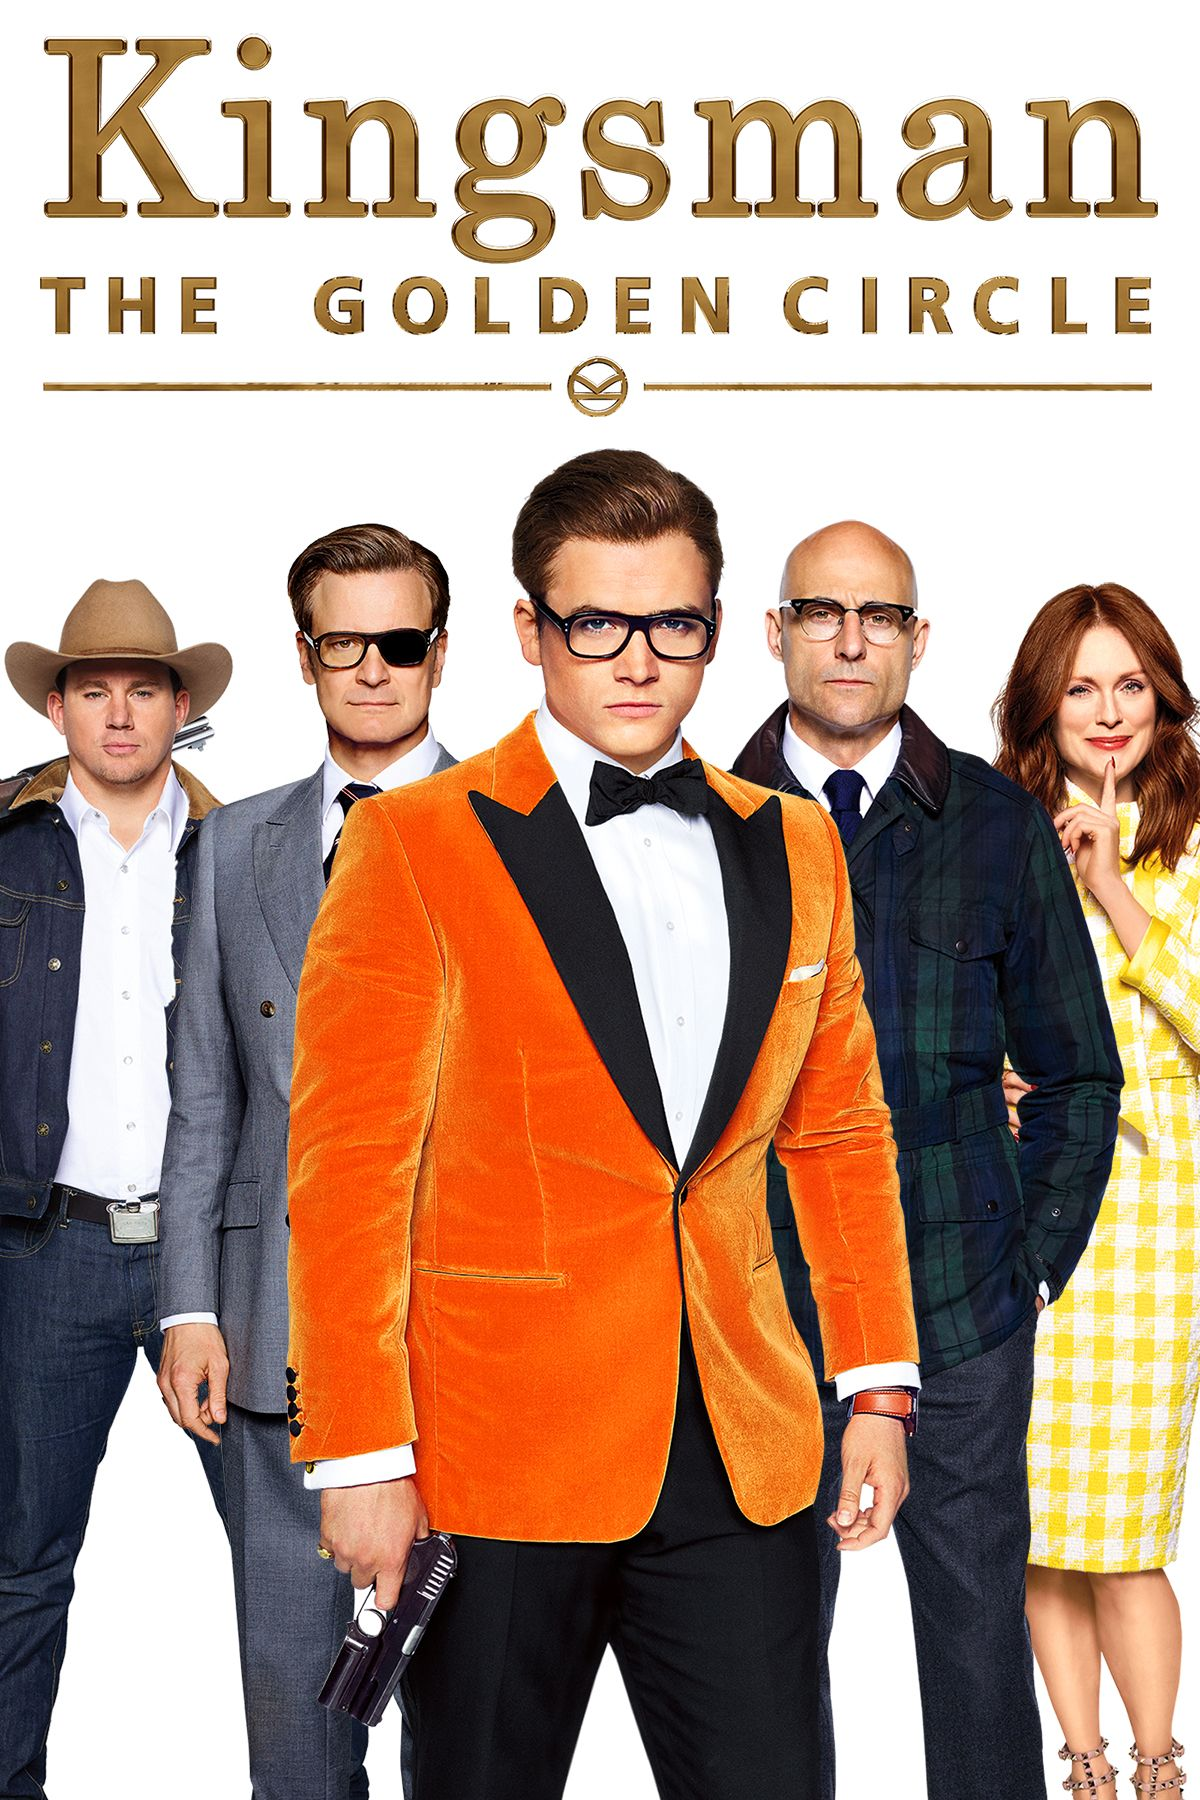 kingsman golden circle full movie online free